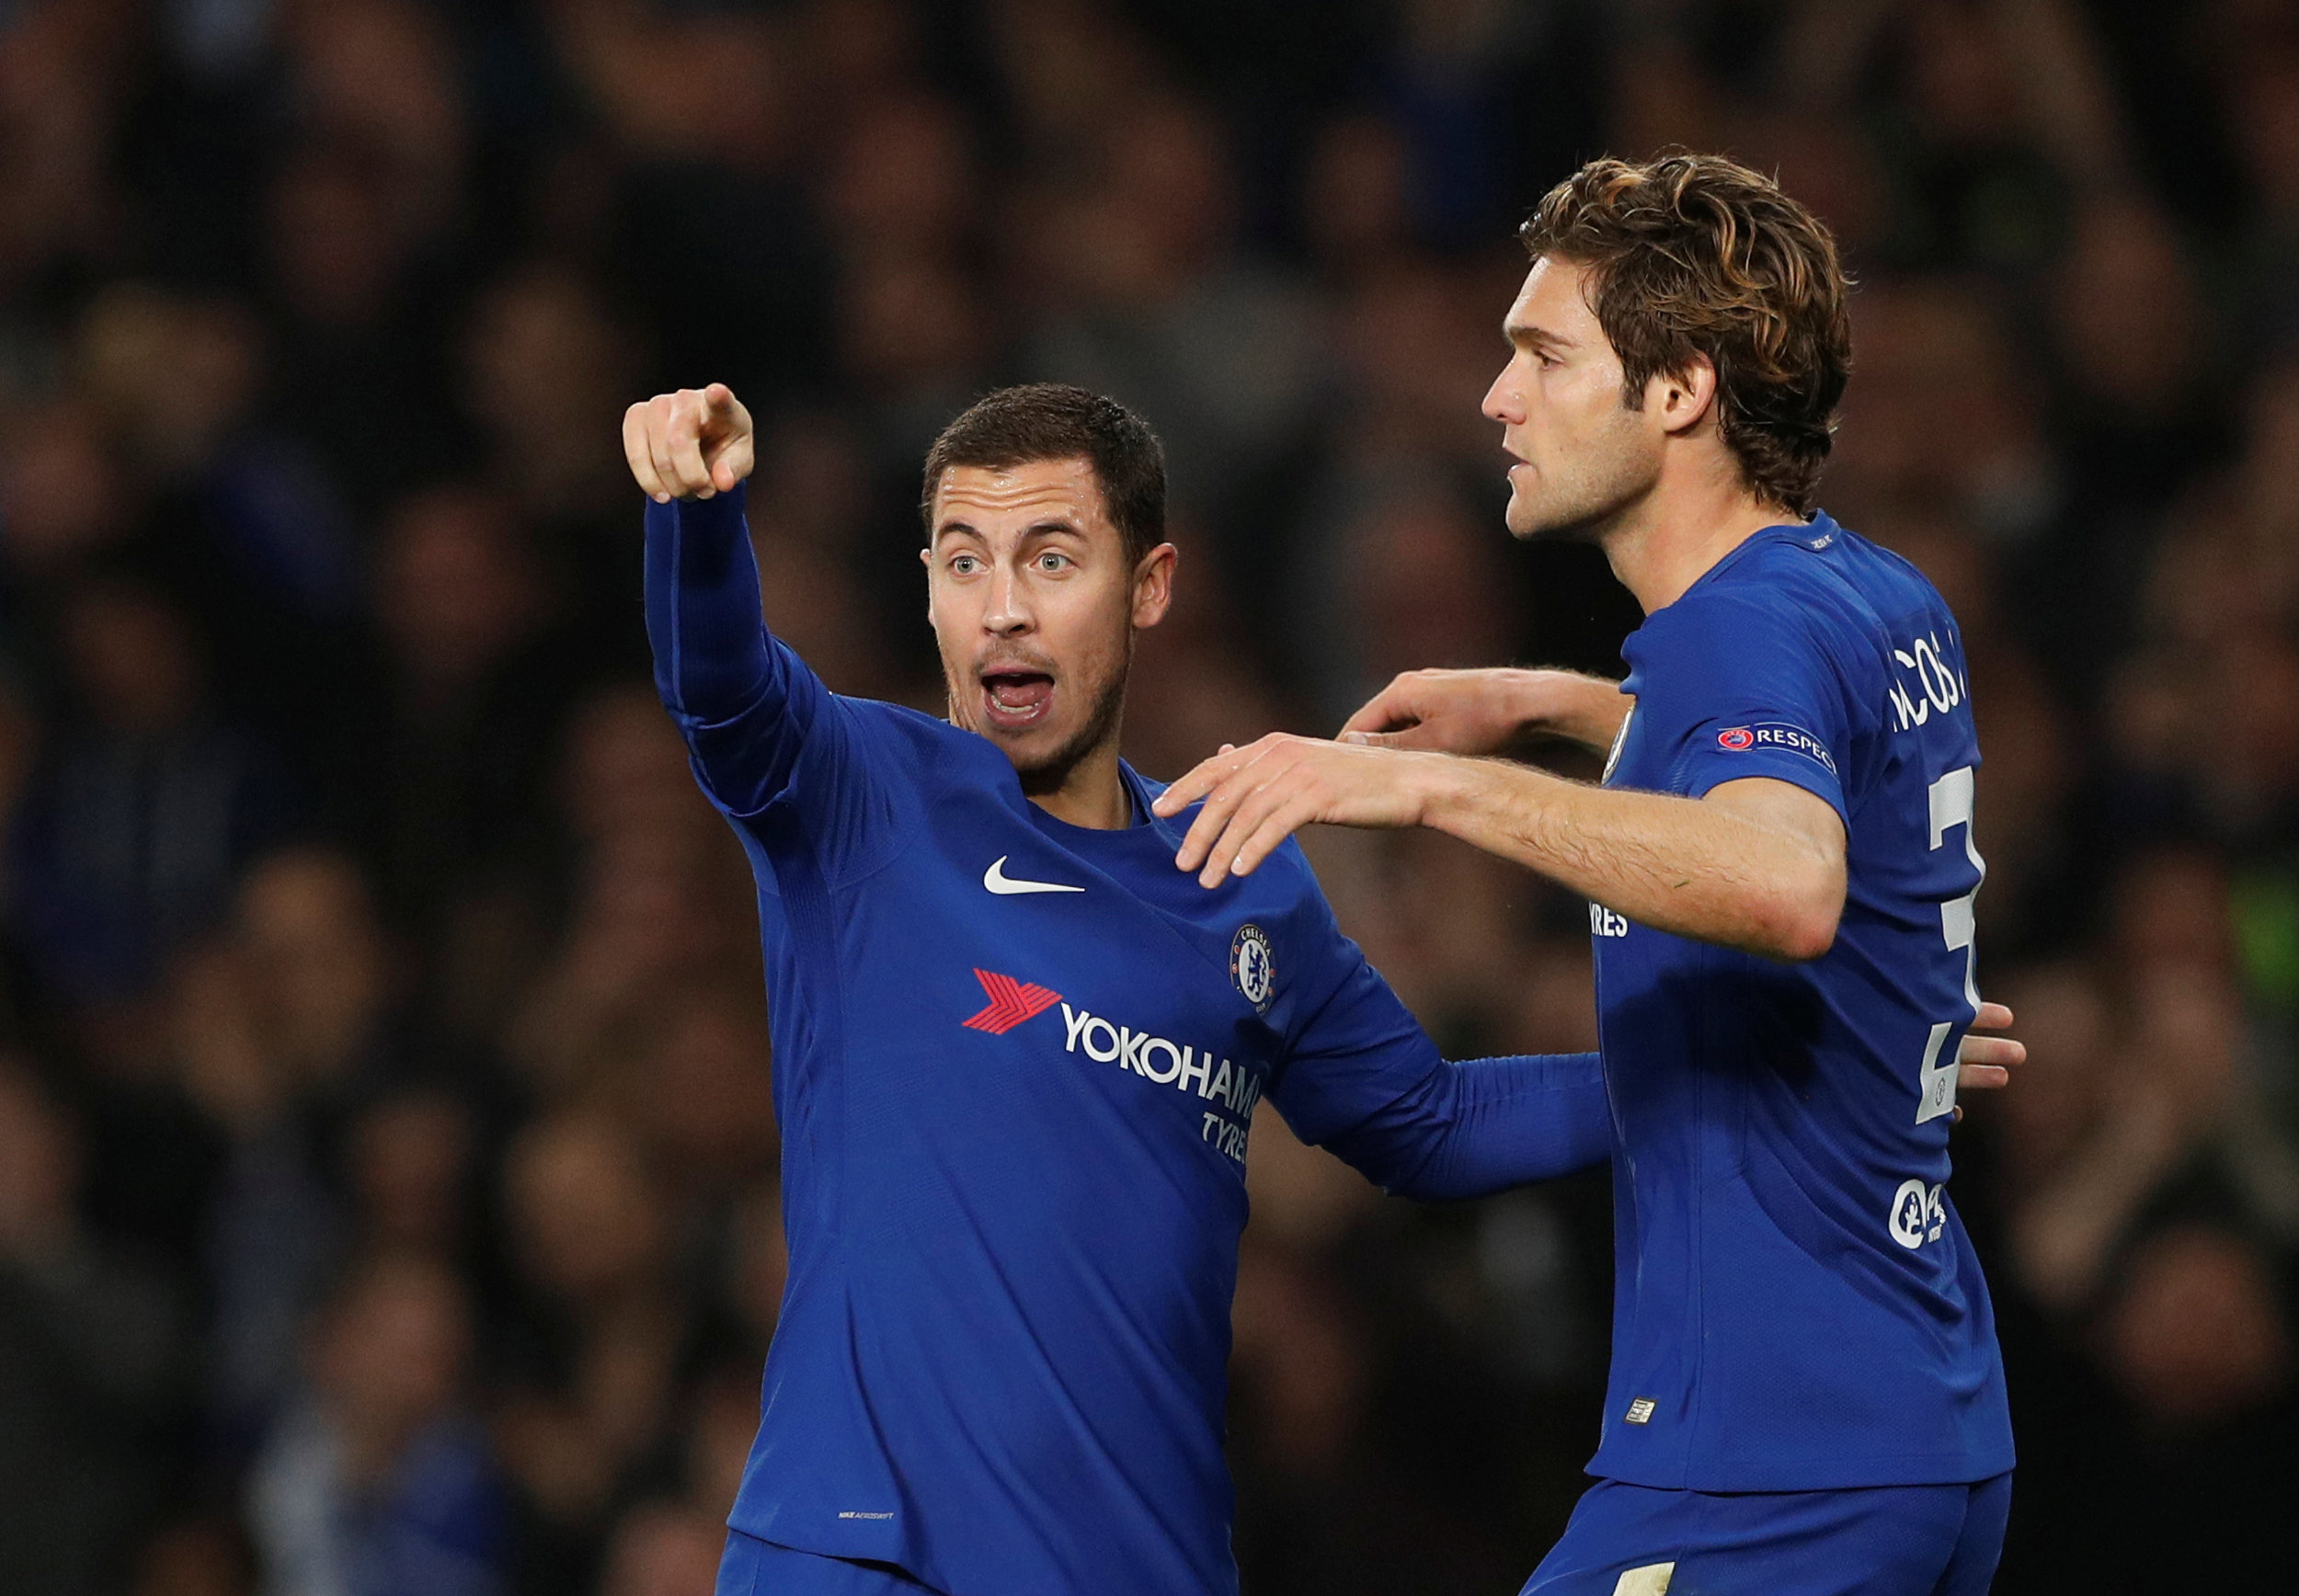 Eden Hazard urges Real Madrid to take former Chelsea teammate Marcos Alonso